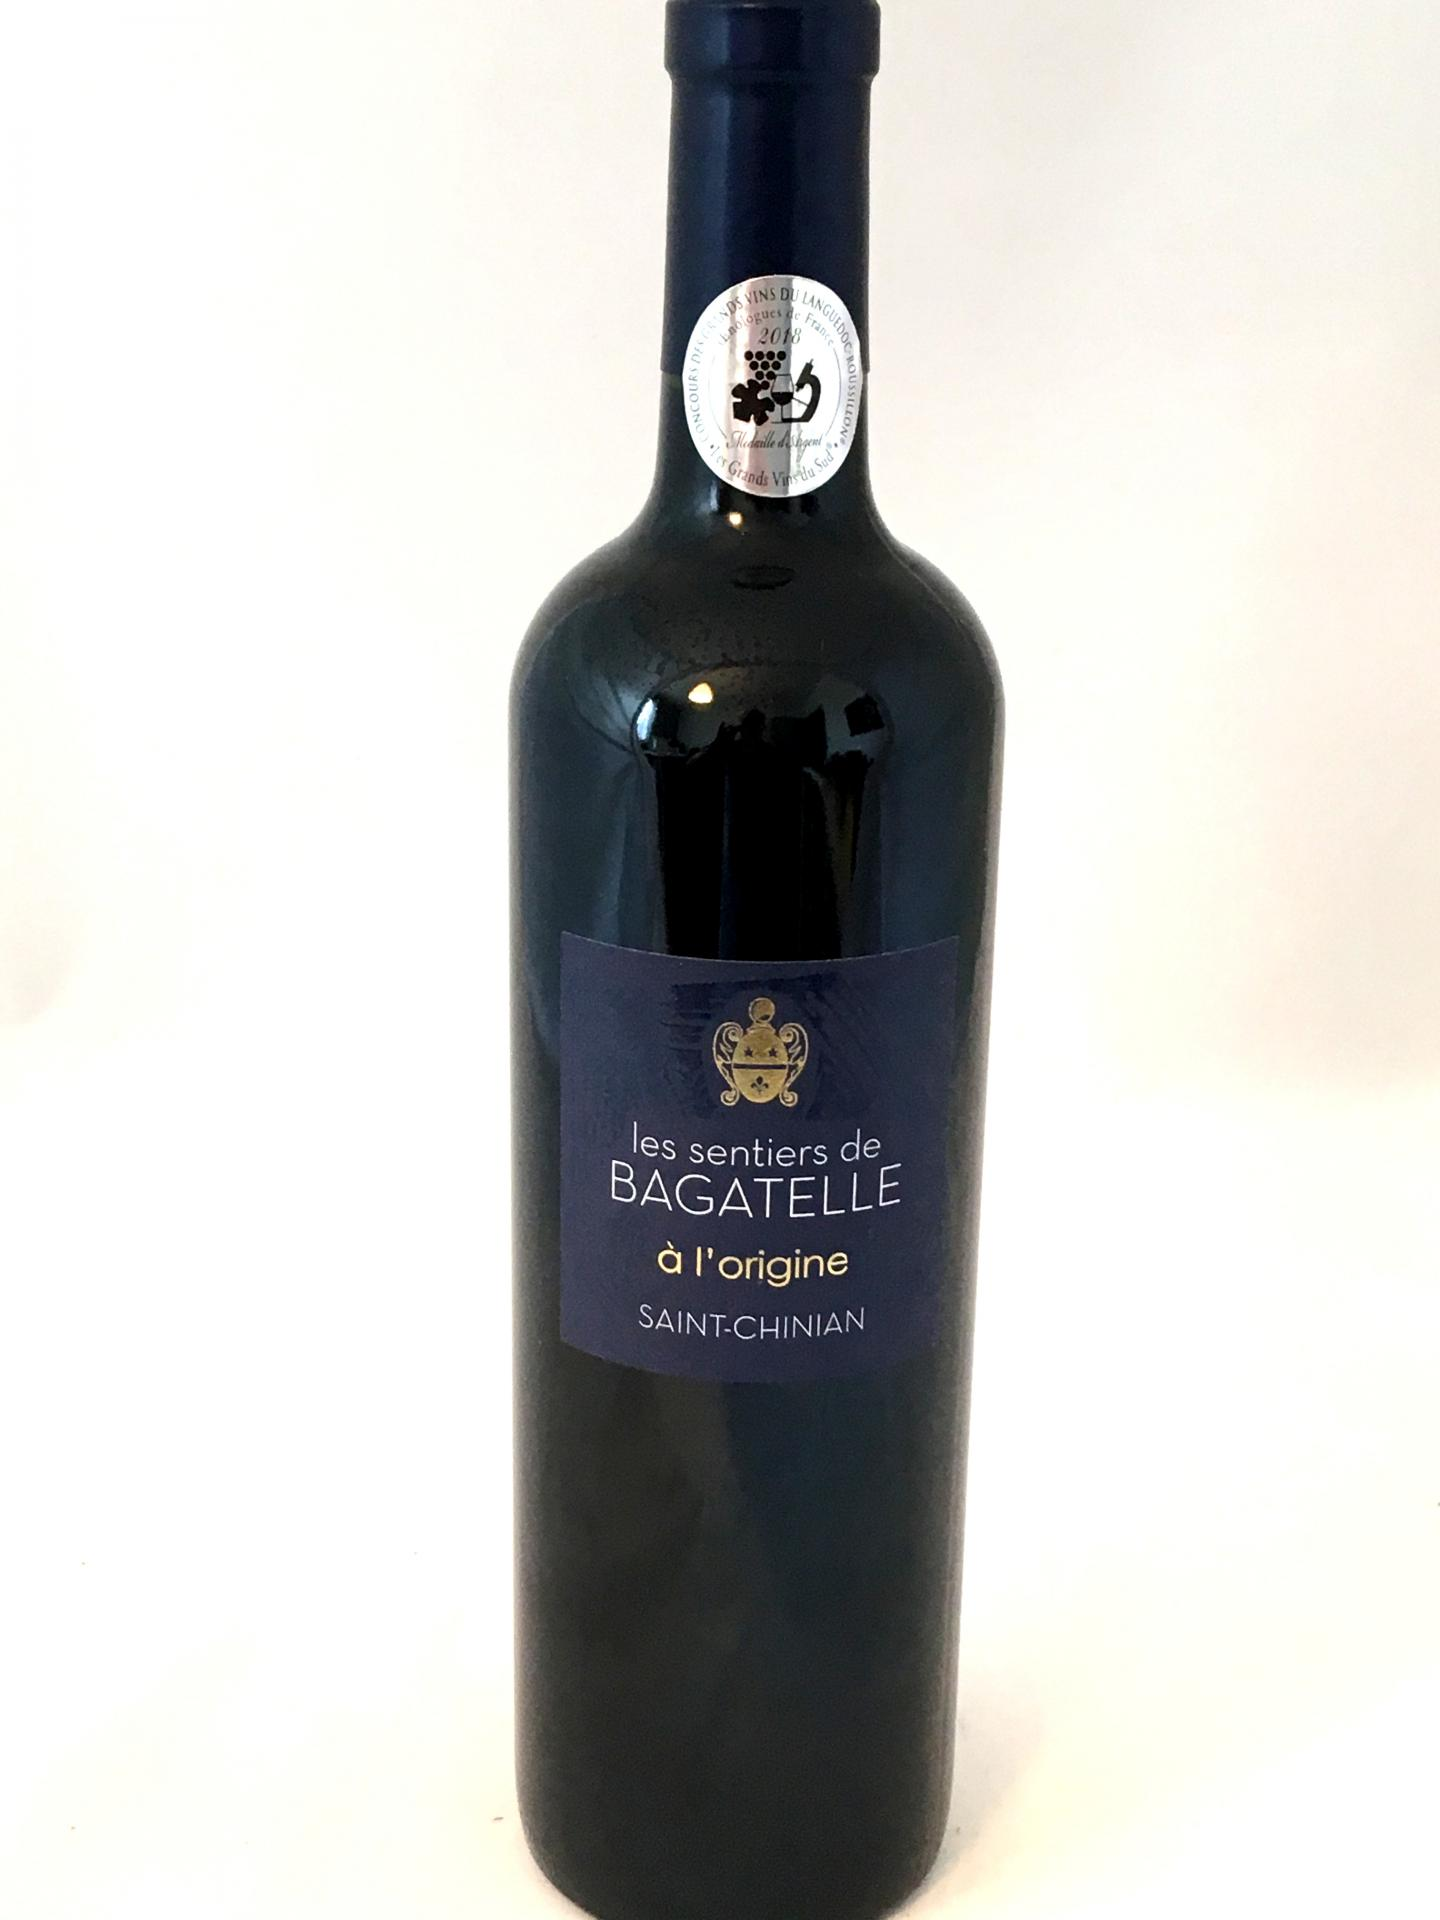 Saint chinian clos bagatelle a l origine aop 2017 2018 75cl rouge